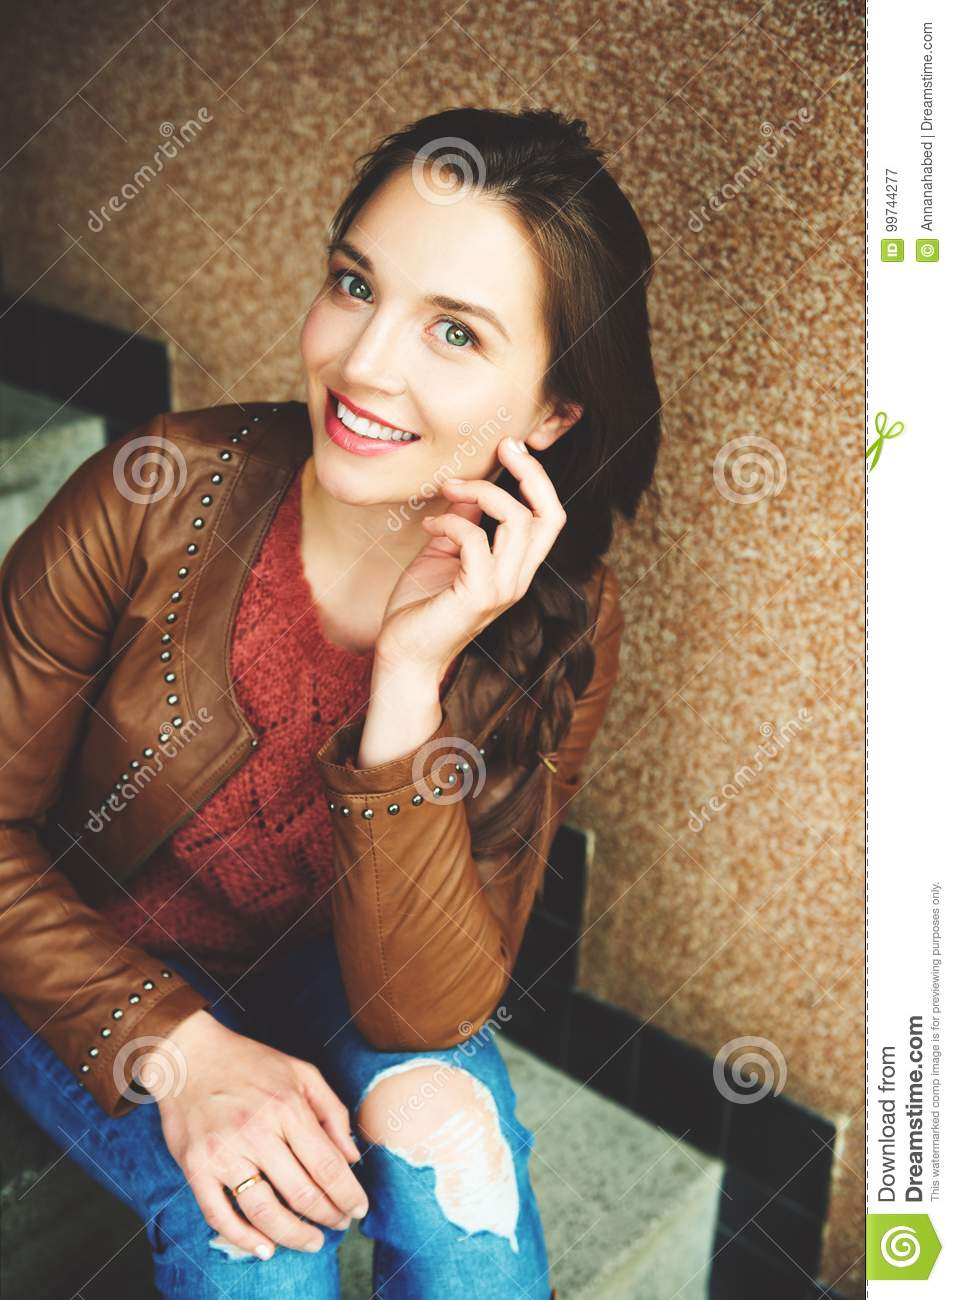 30 Yr Fixed Mortgage Rates: Portrait Of Young 25-30 Year Old Woman Stock Image